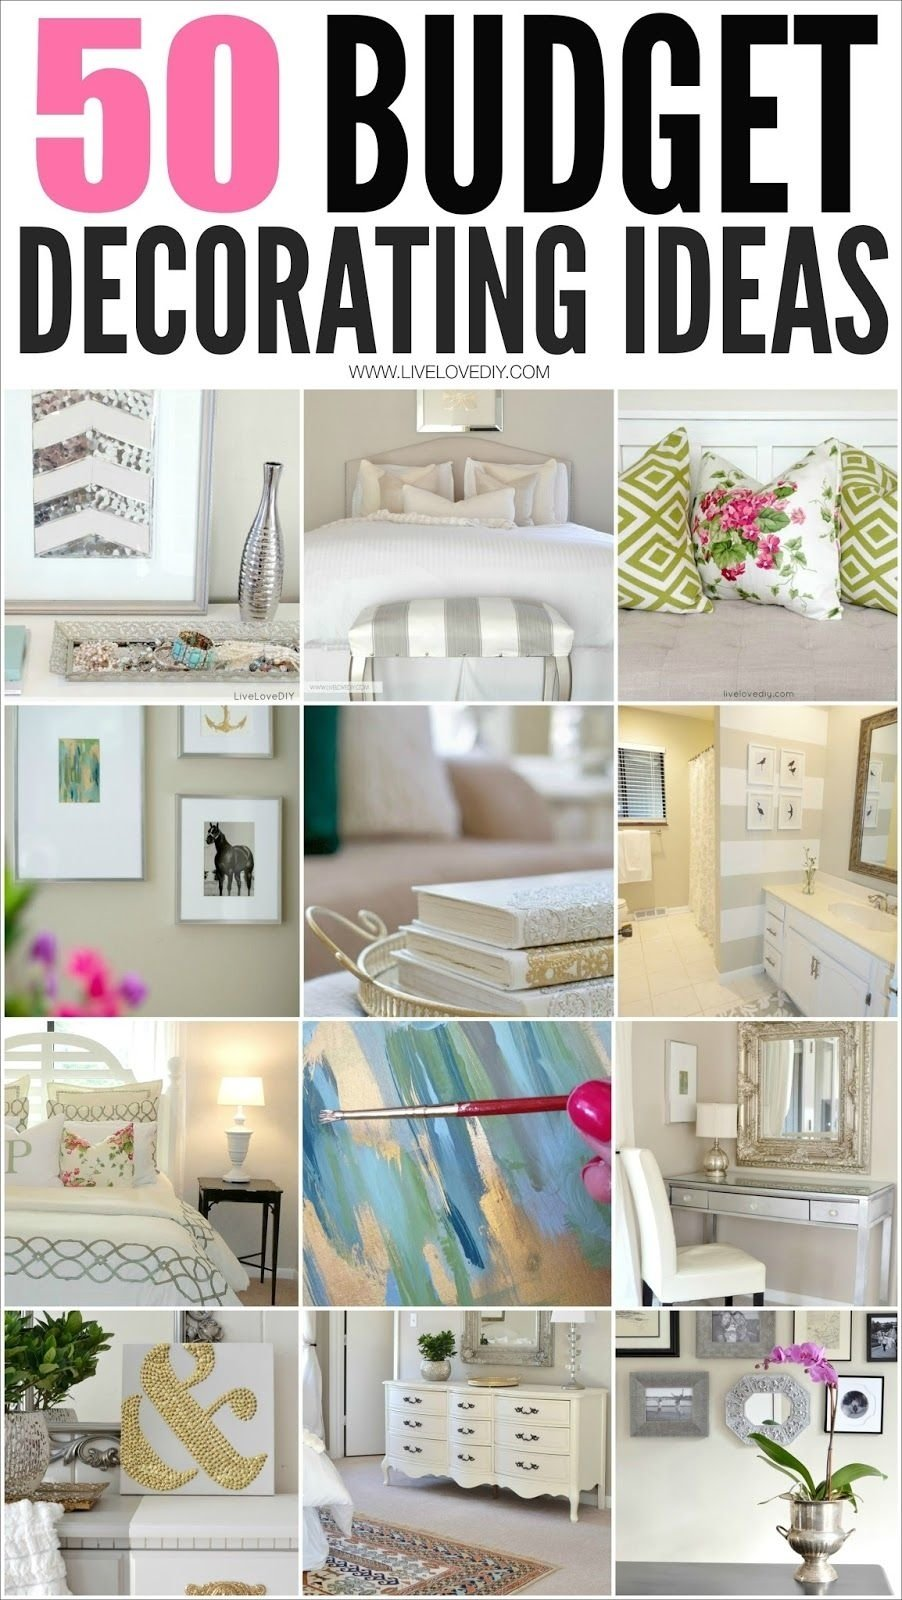 50 budget decorating tips you should know! (livelovediy) | budgeting